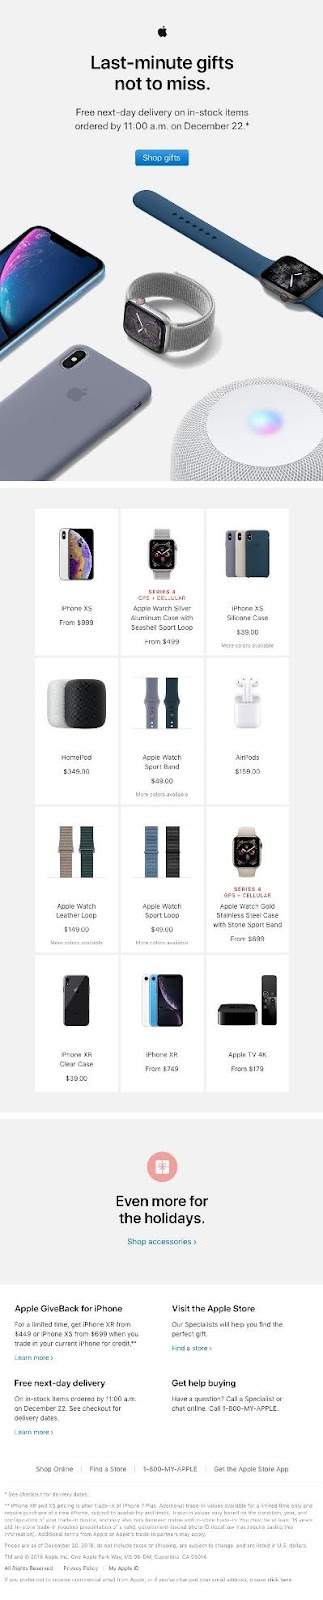 Apple last minute gift ideas email example